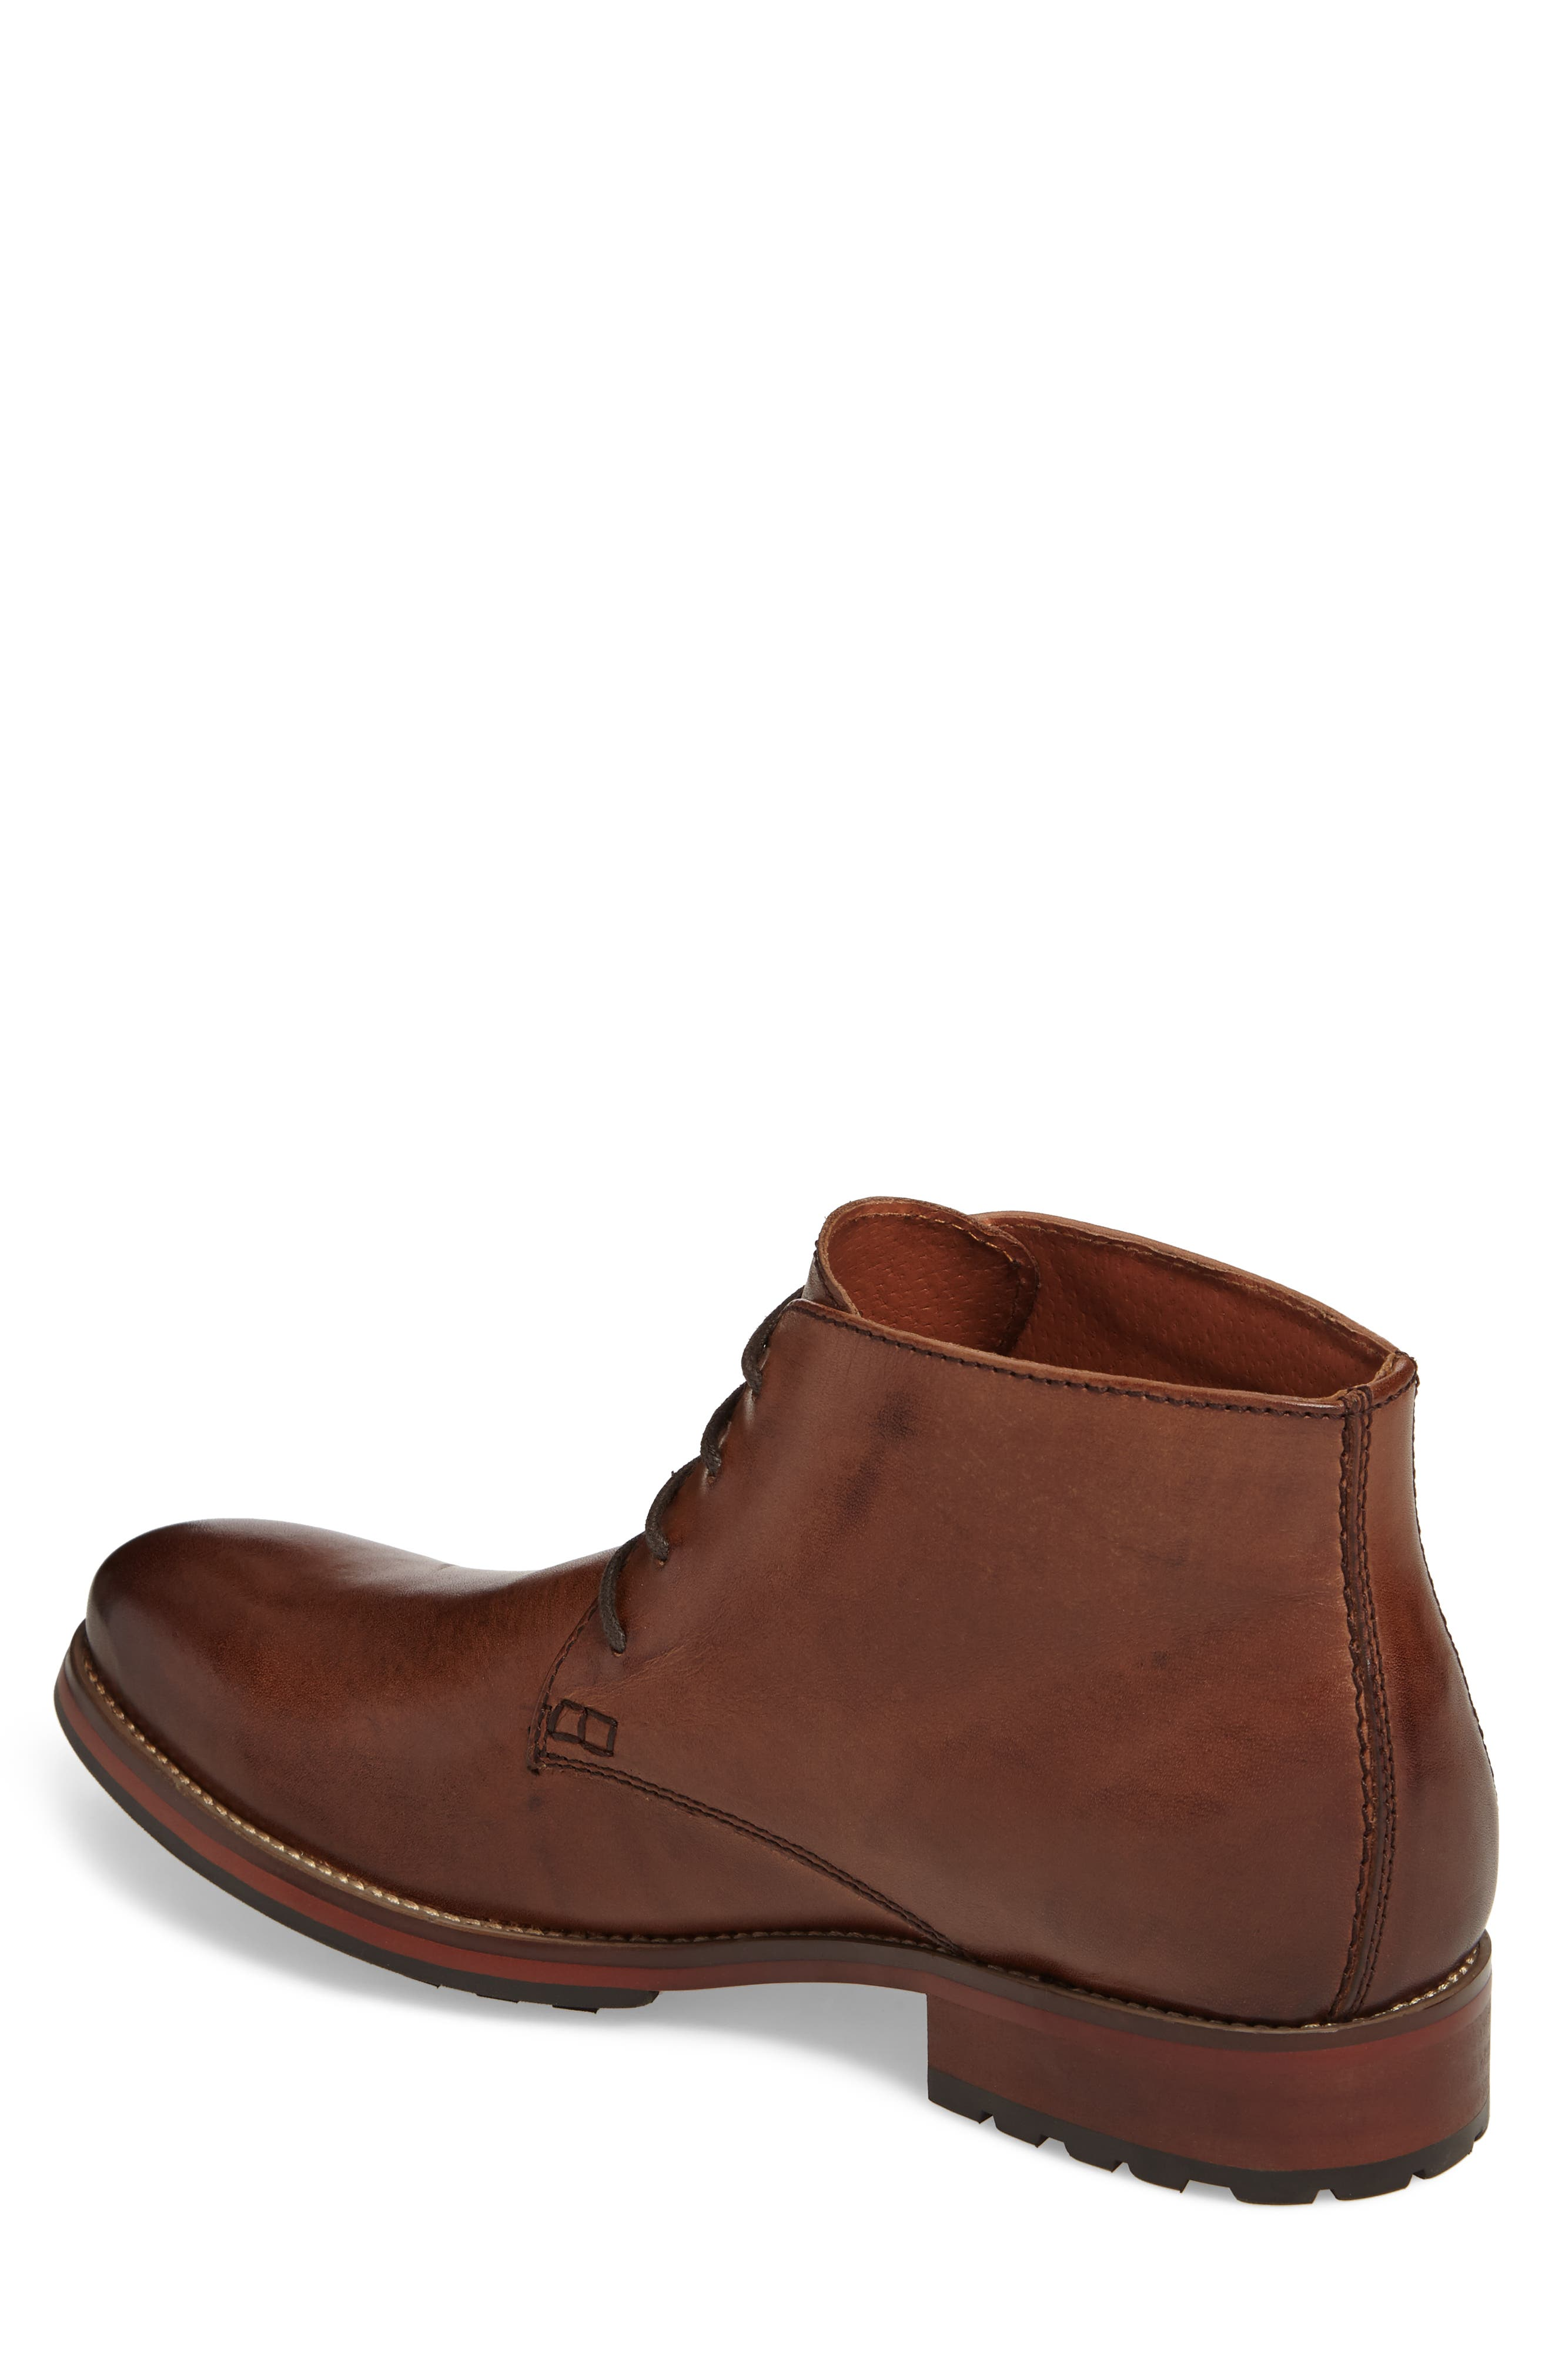 Kennison Chukka Boot,                             Alternate thumbnail 2, color,                             Brown